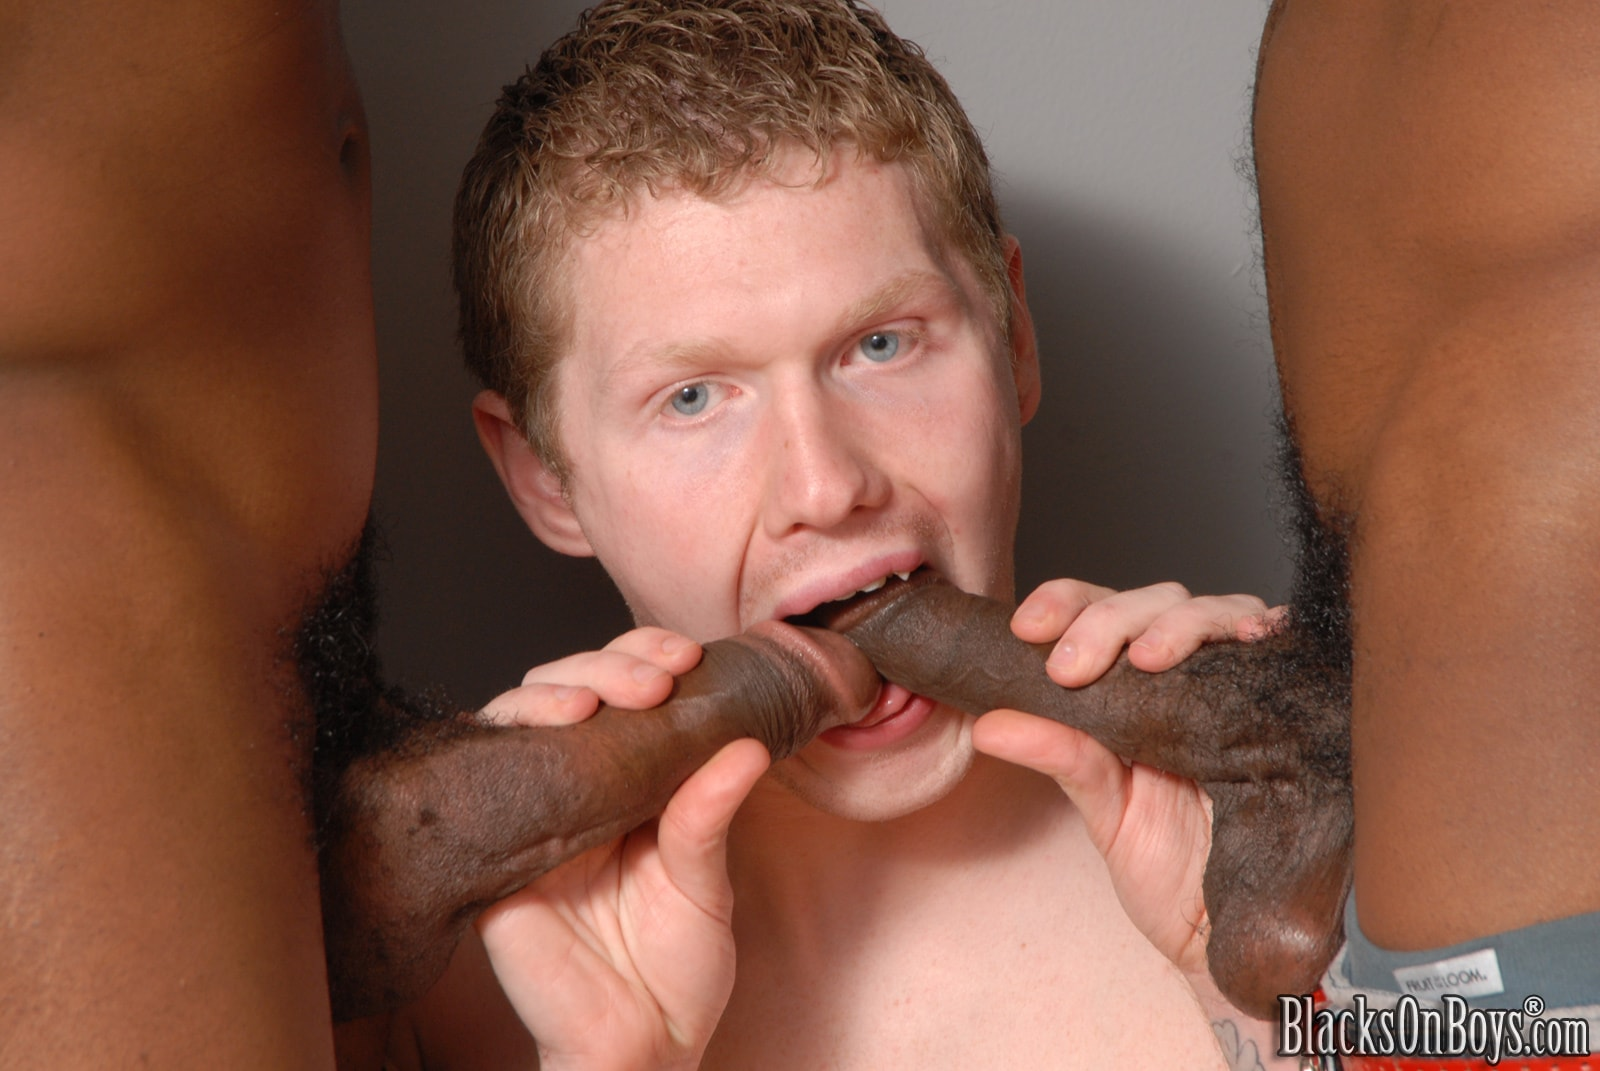 Dogfart Men '- Blacks On Boys' starring Dallas Wood (Photo 14)